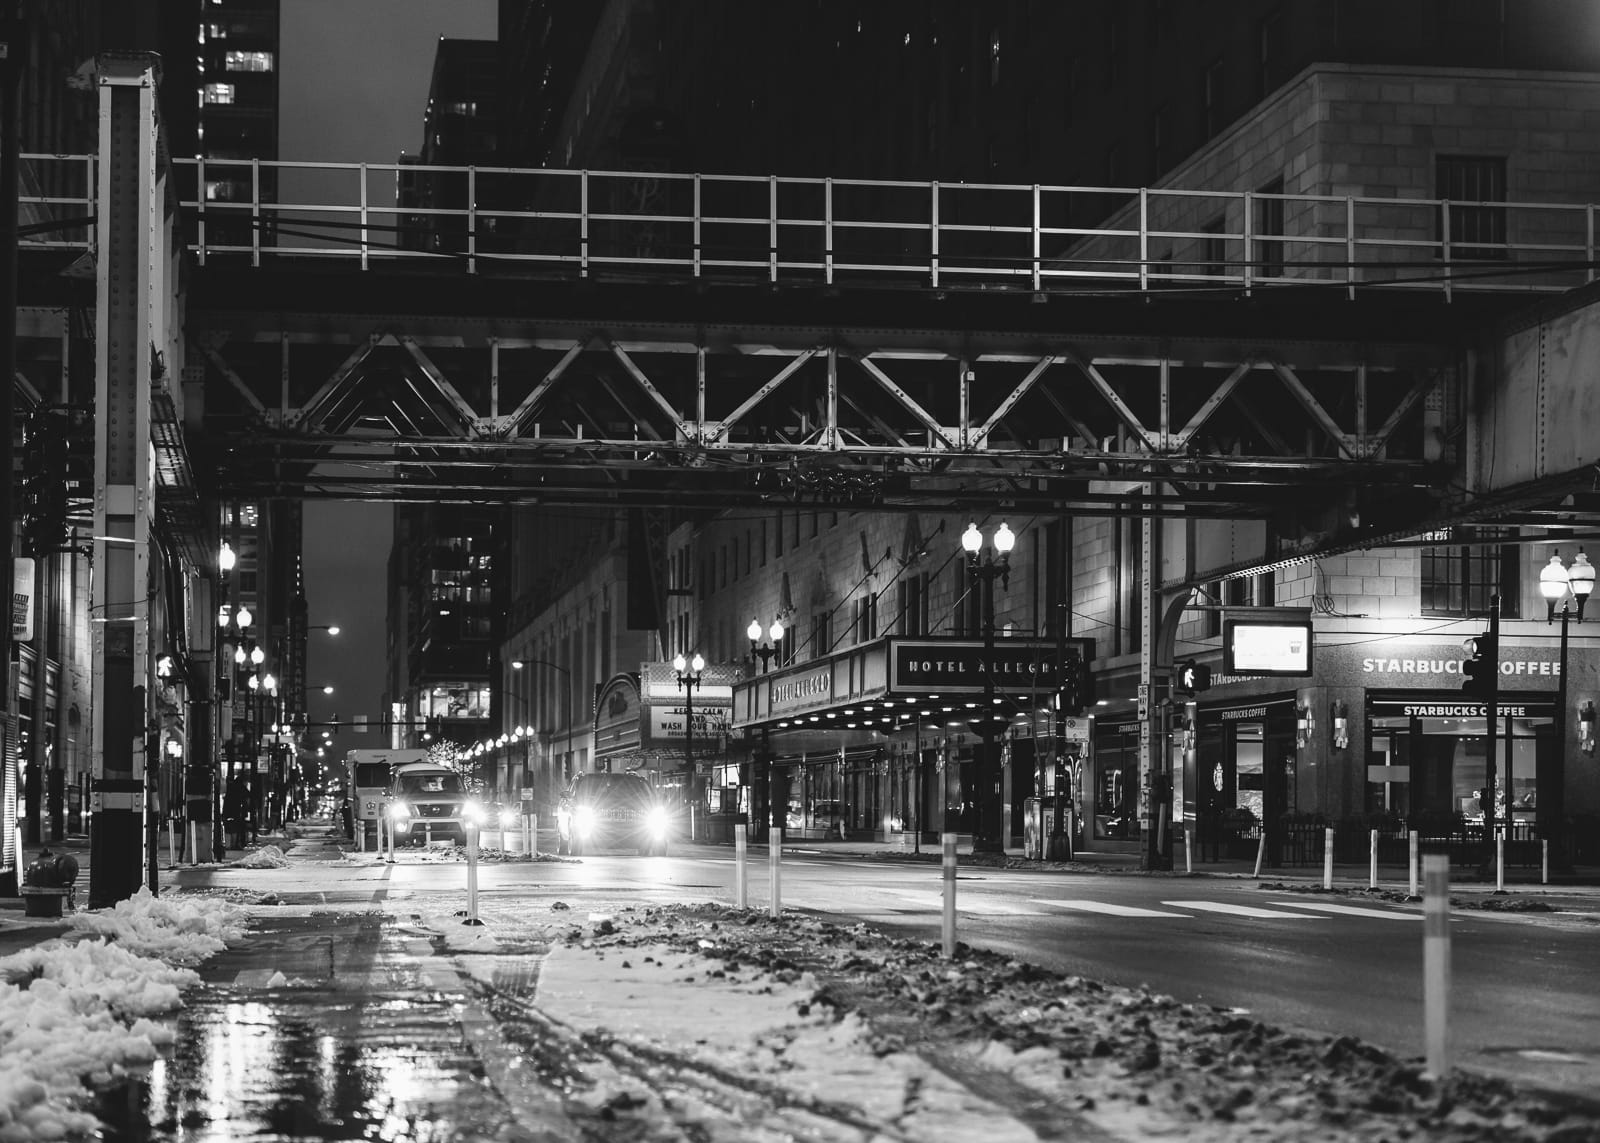 Downtown Chicago at Night, 2020